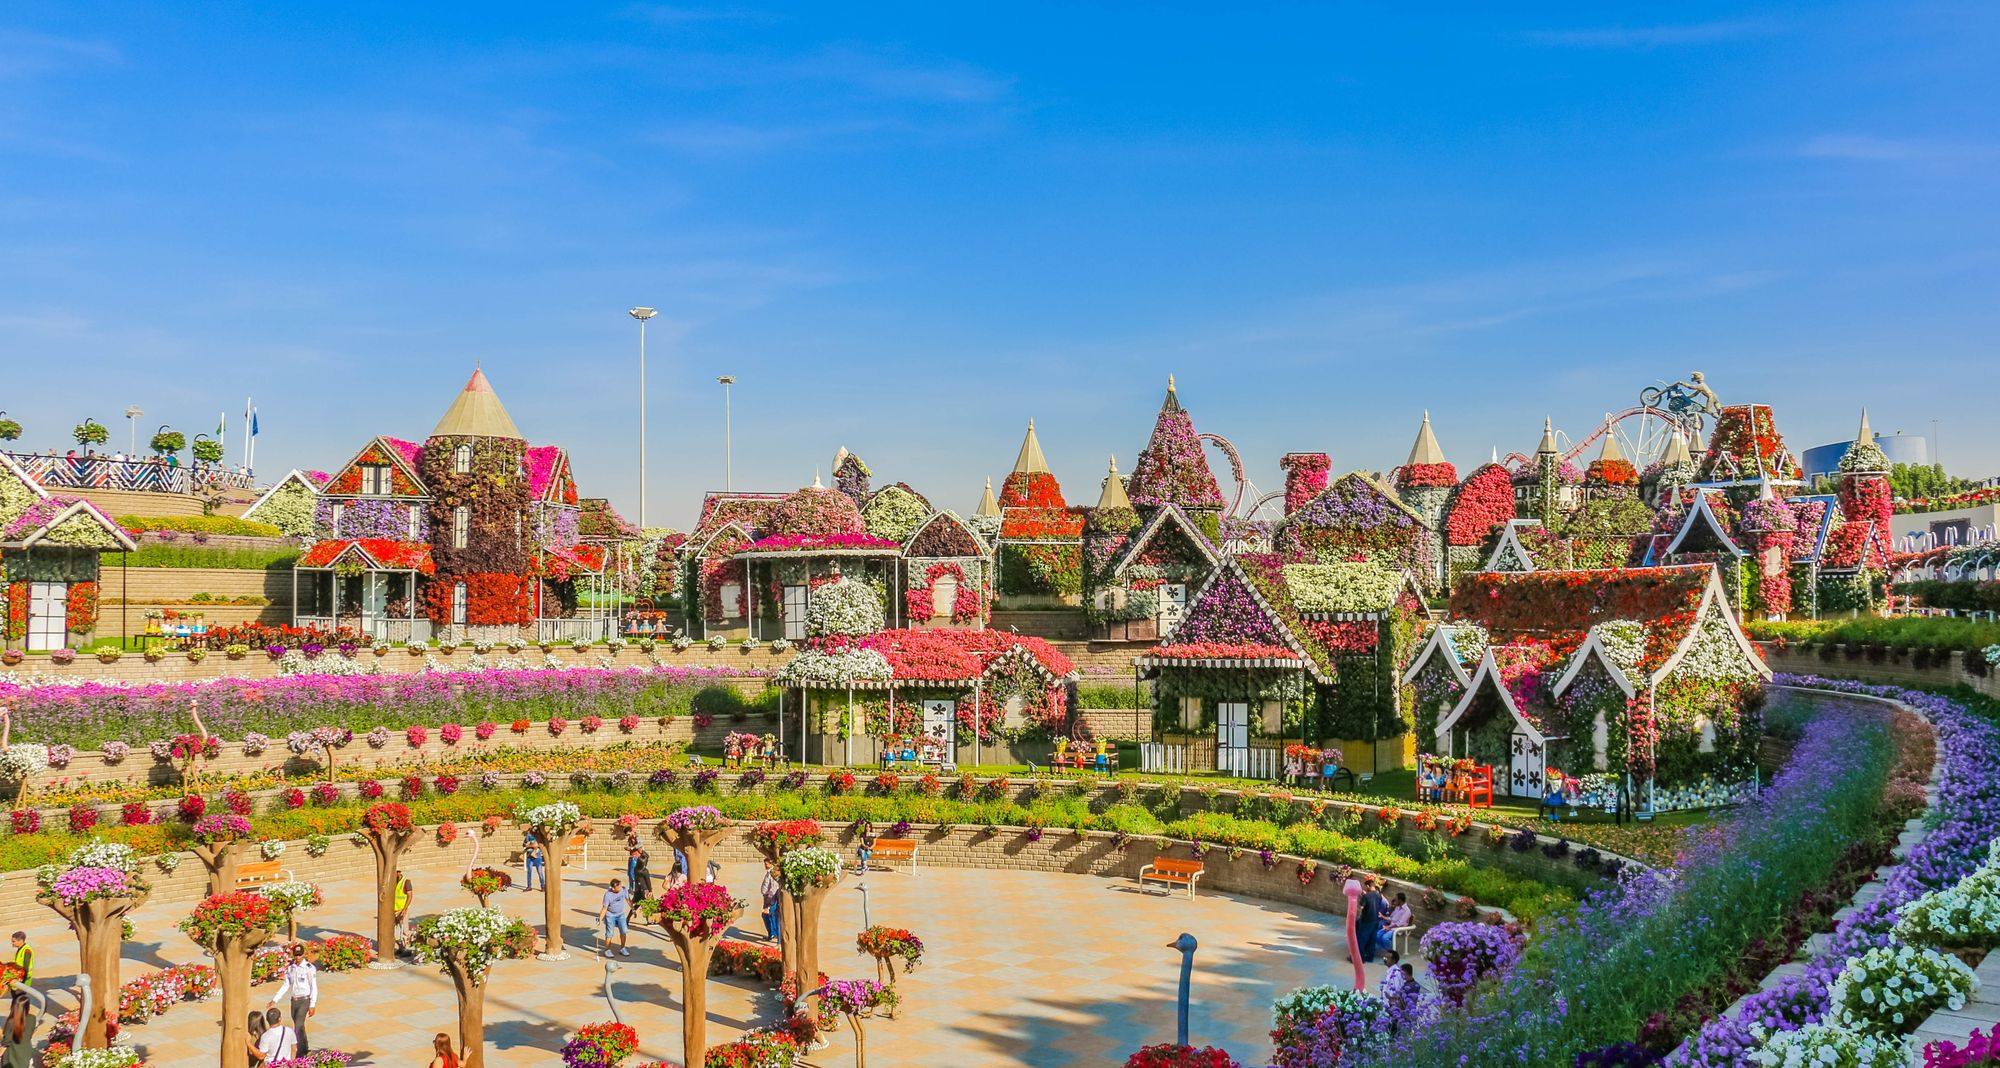 The miracle Gardens in Dubai